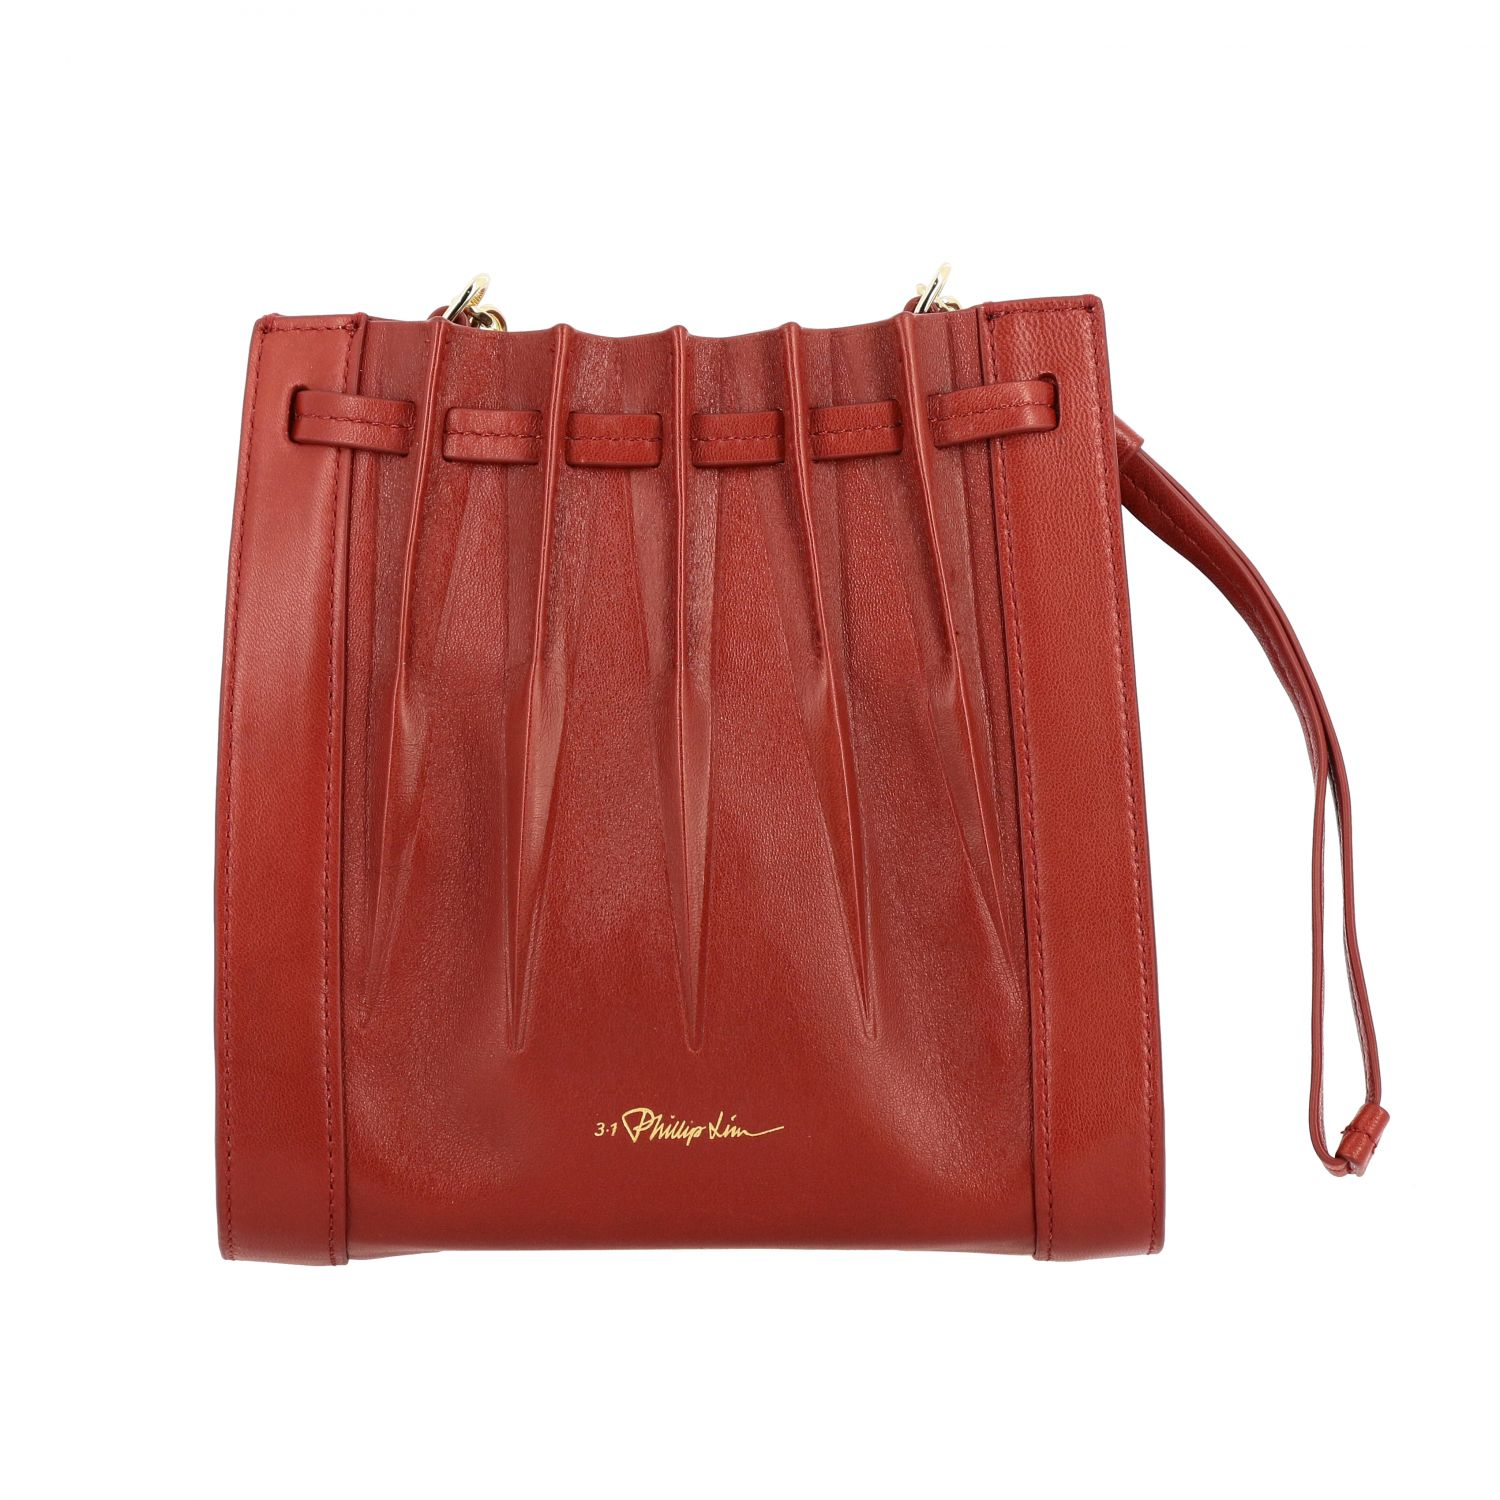 Mini bag 3.1 Phillip Lim: Shoulder bag women 3.1 Phillip Lim red 1